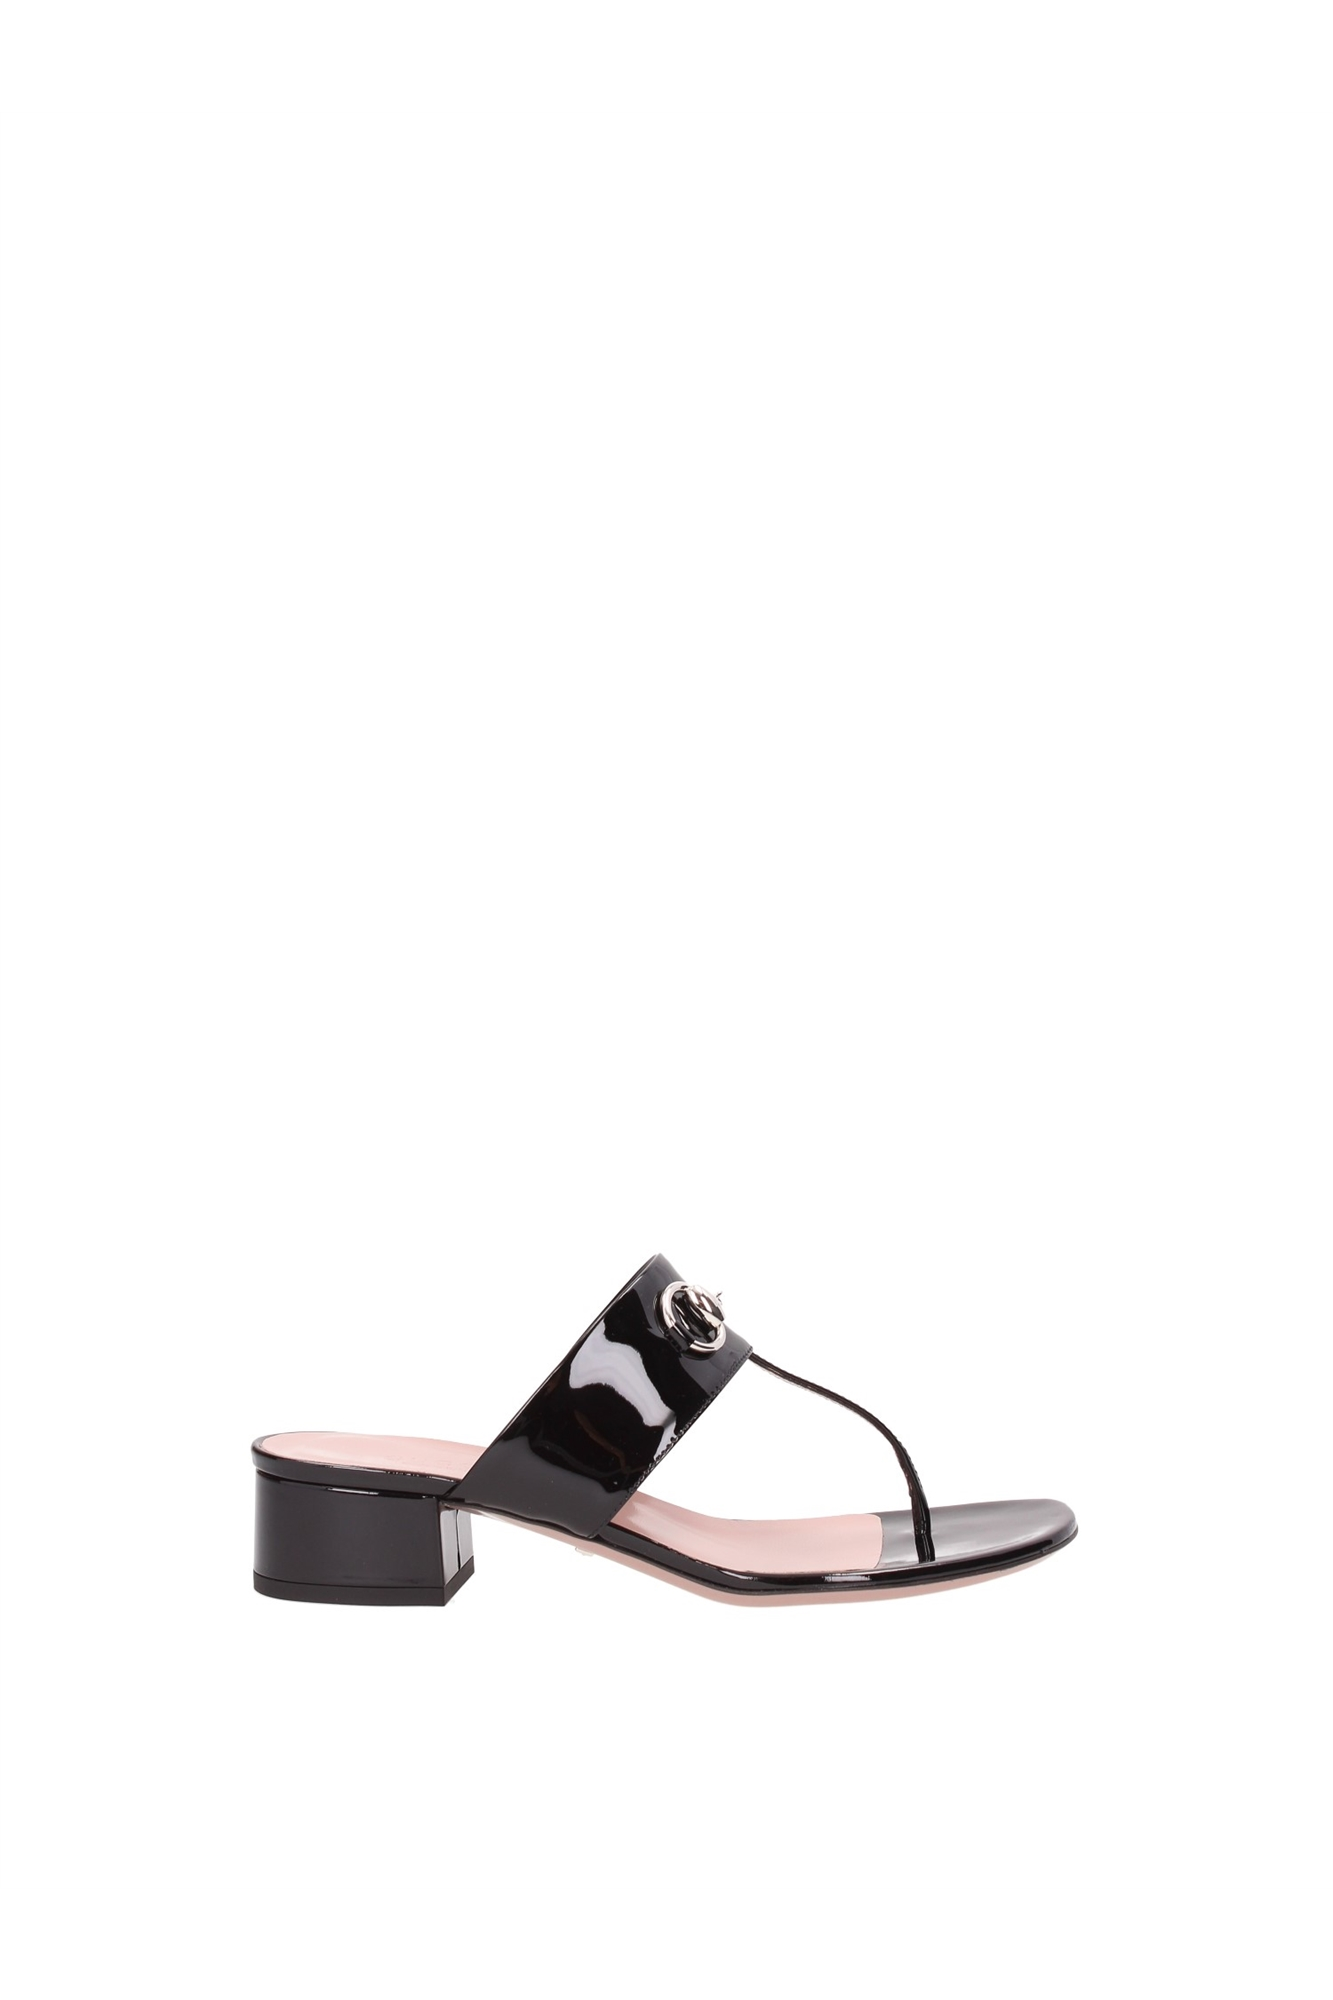 Black Patent Leather Sandals Sale: Save Up to 60% Off! Shop grounwhijwgg.cf's huge selection of Black Patent Leather Sandals - Over styles available. FREE Shipping & Exchanges, and a .